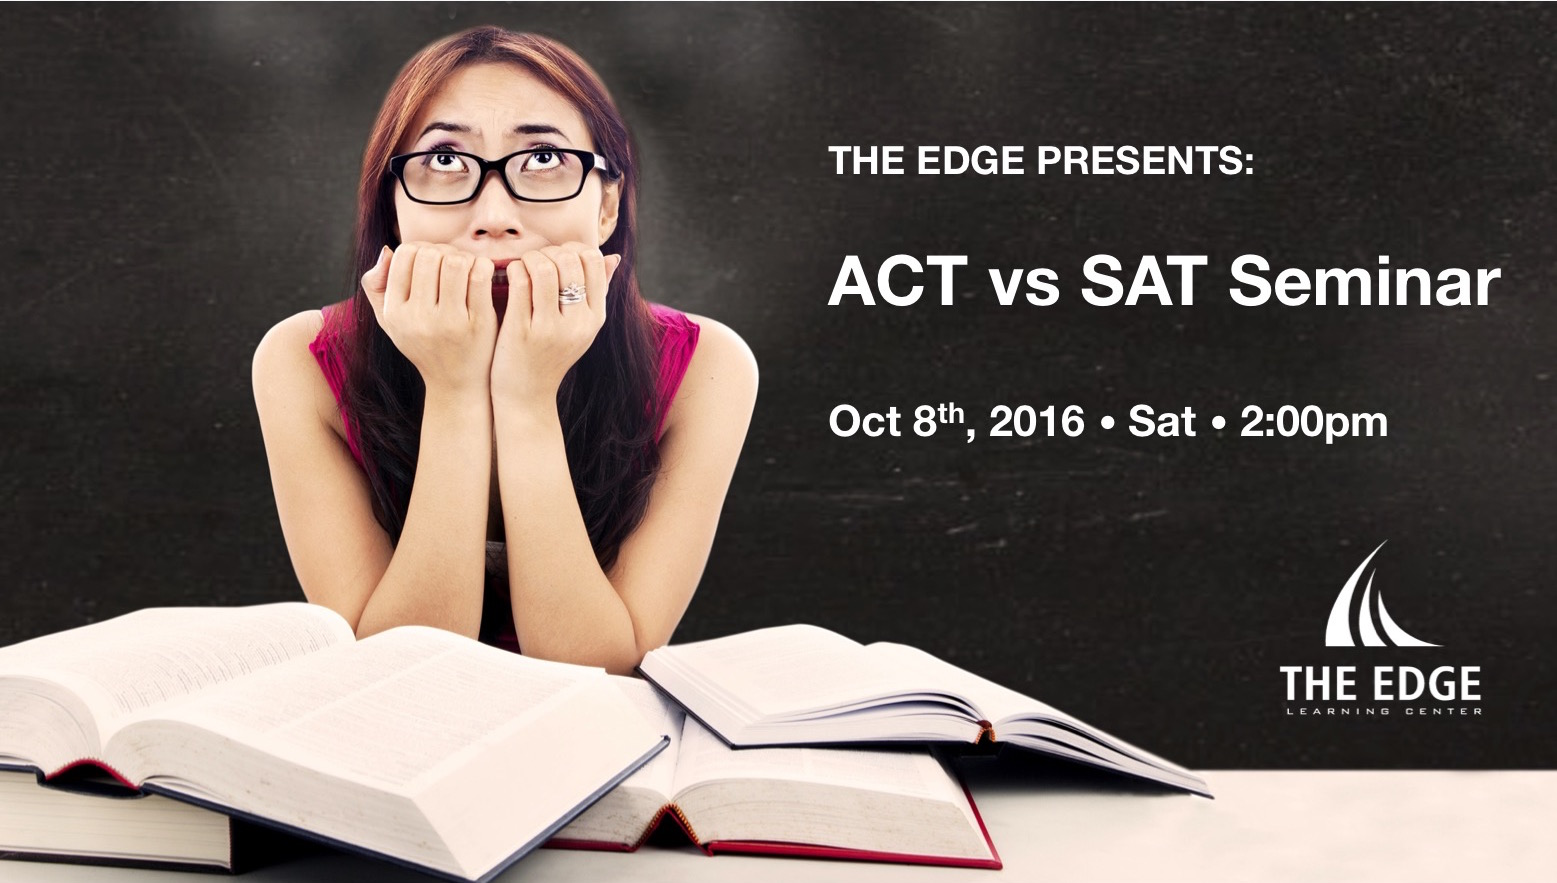 The Edge ACT vs SAT Seminar